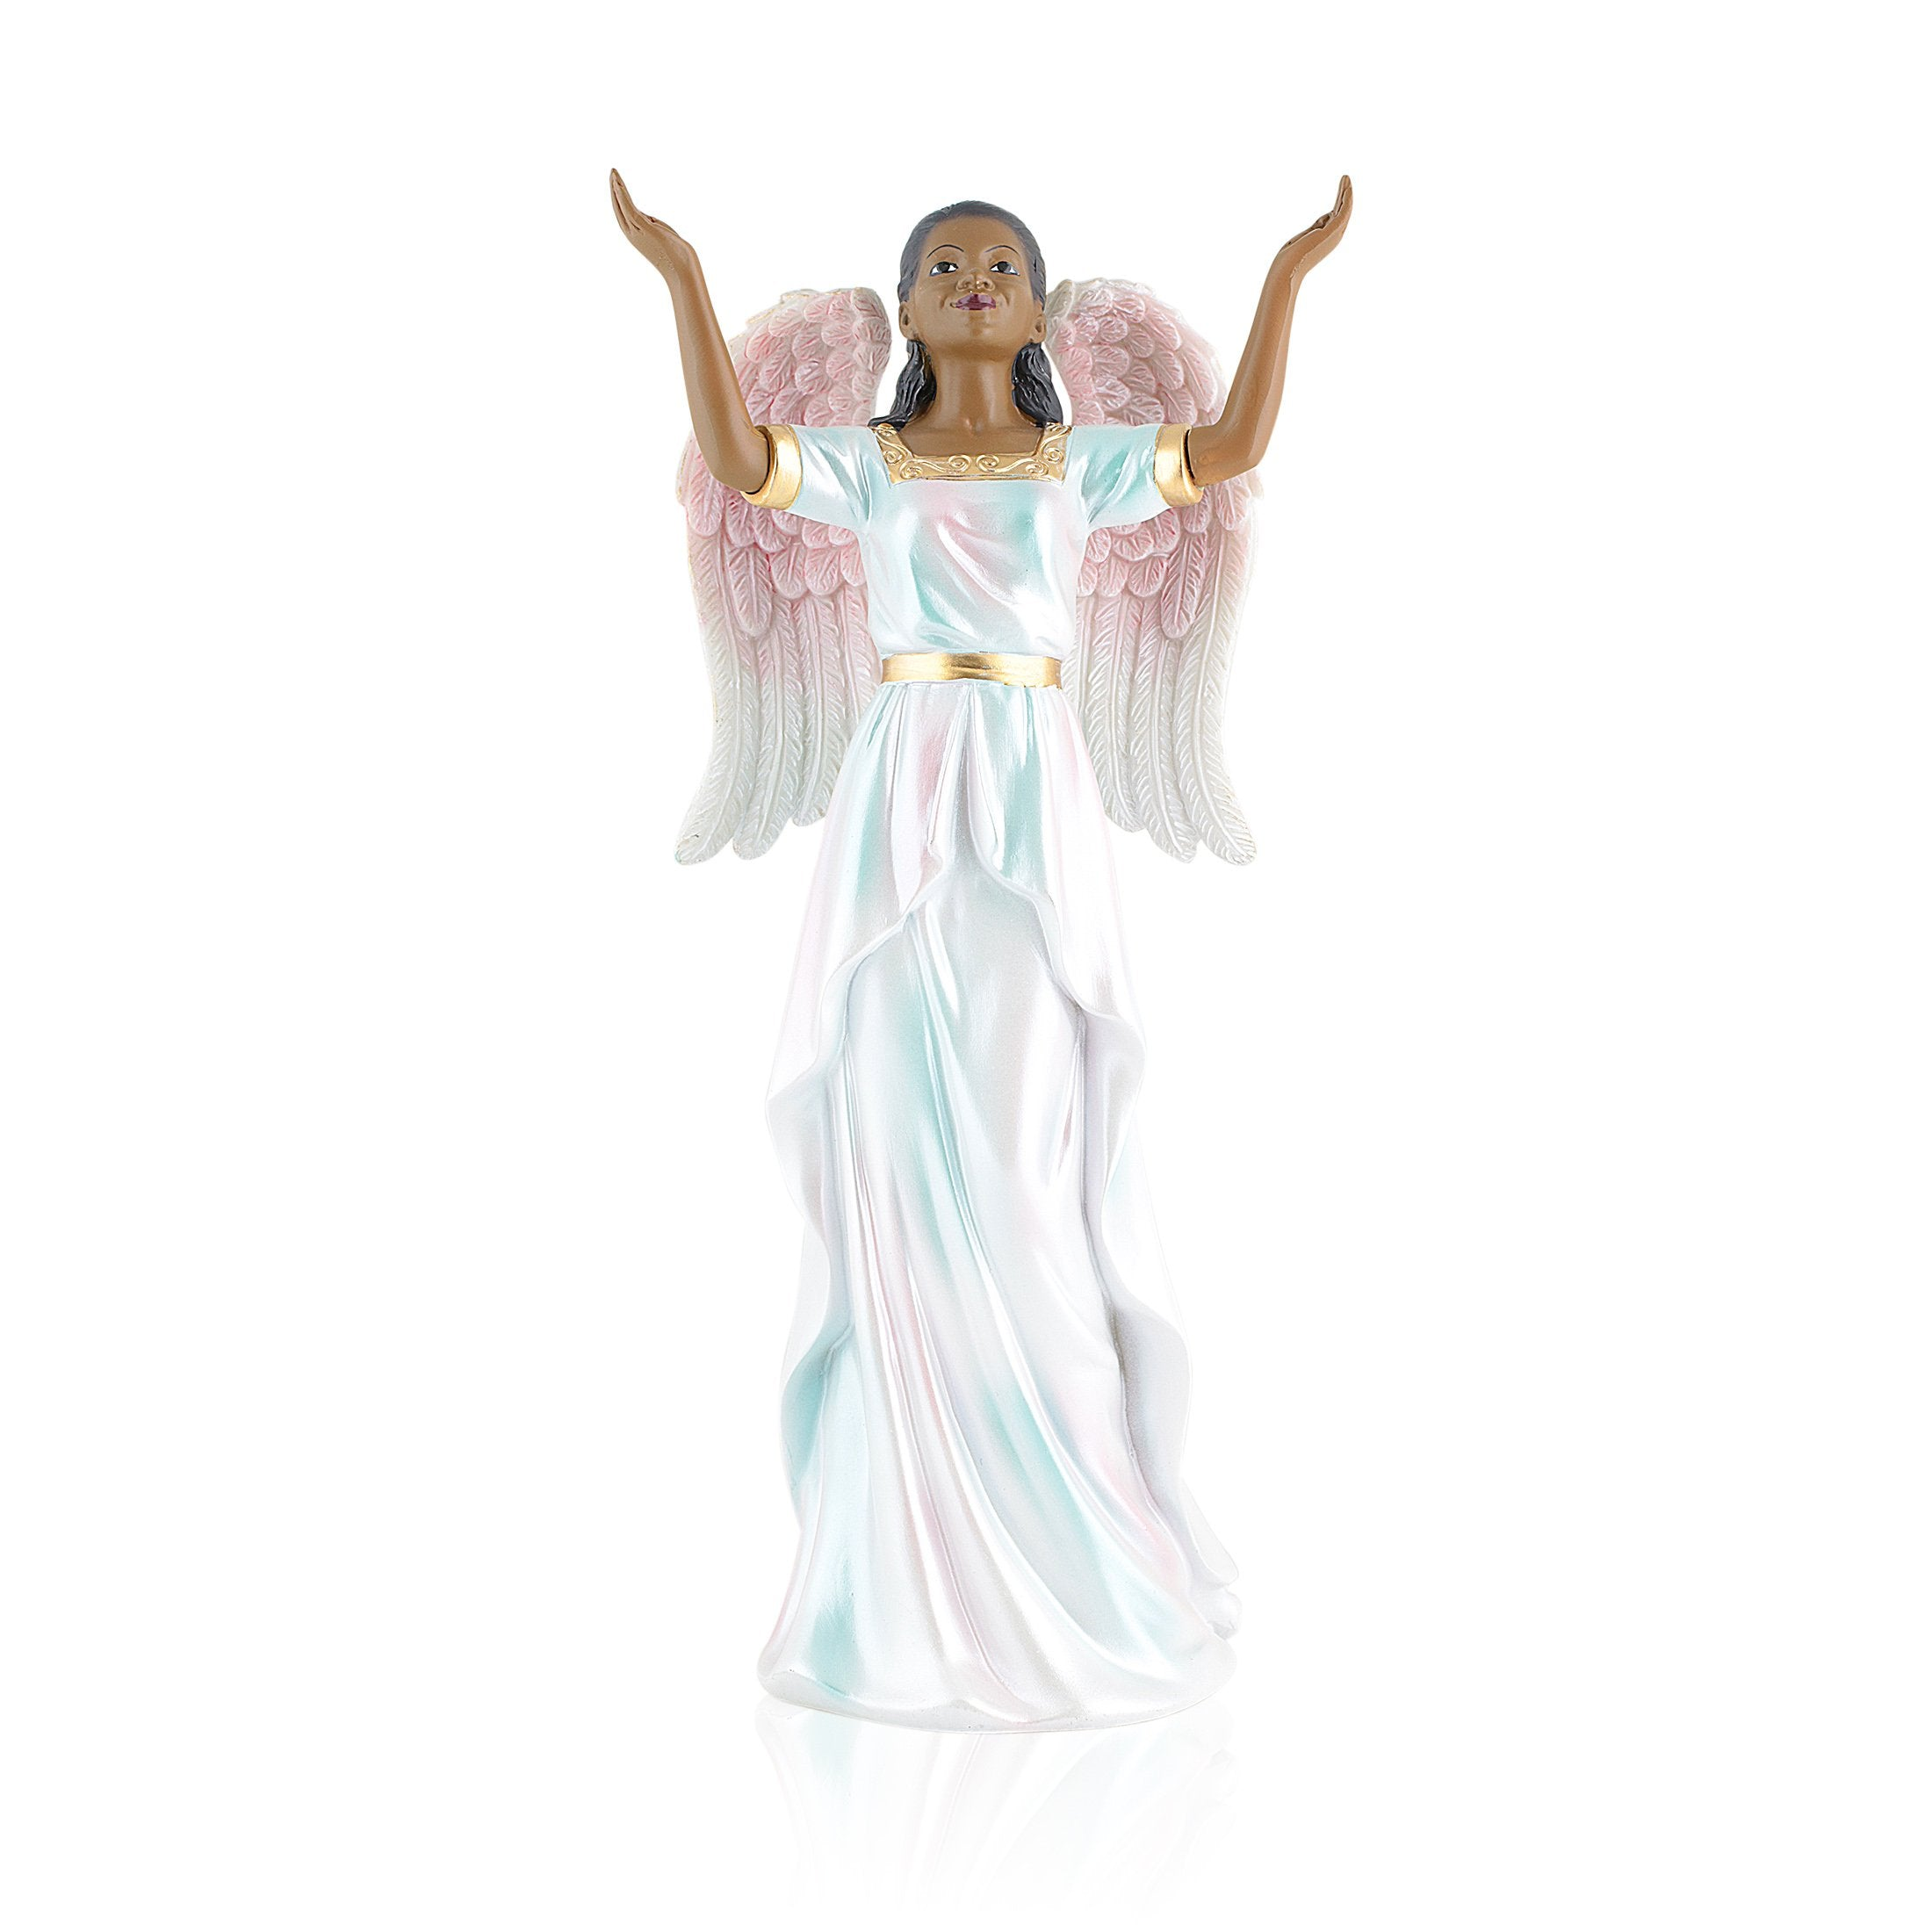 Praise: African American Angel Figurine by Positive Image Gifts